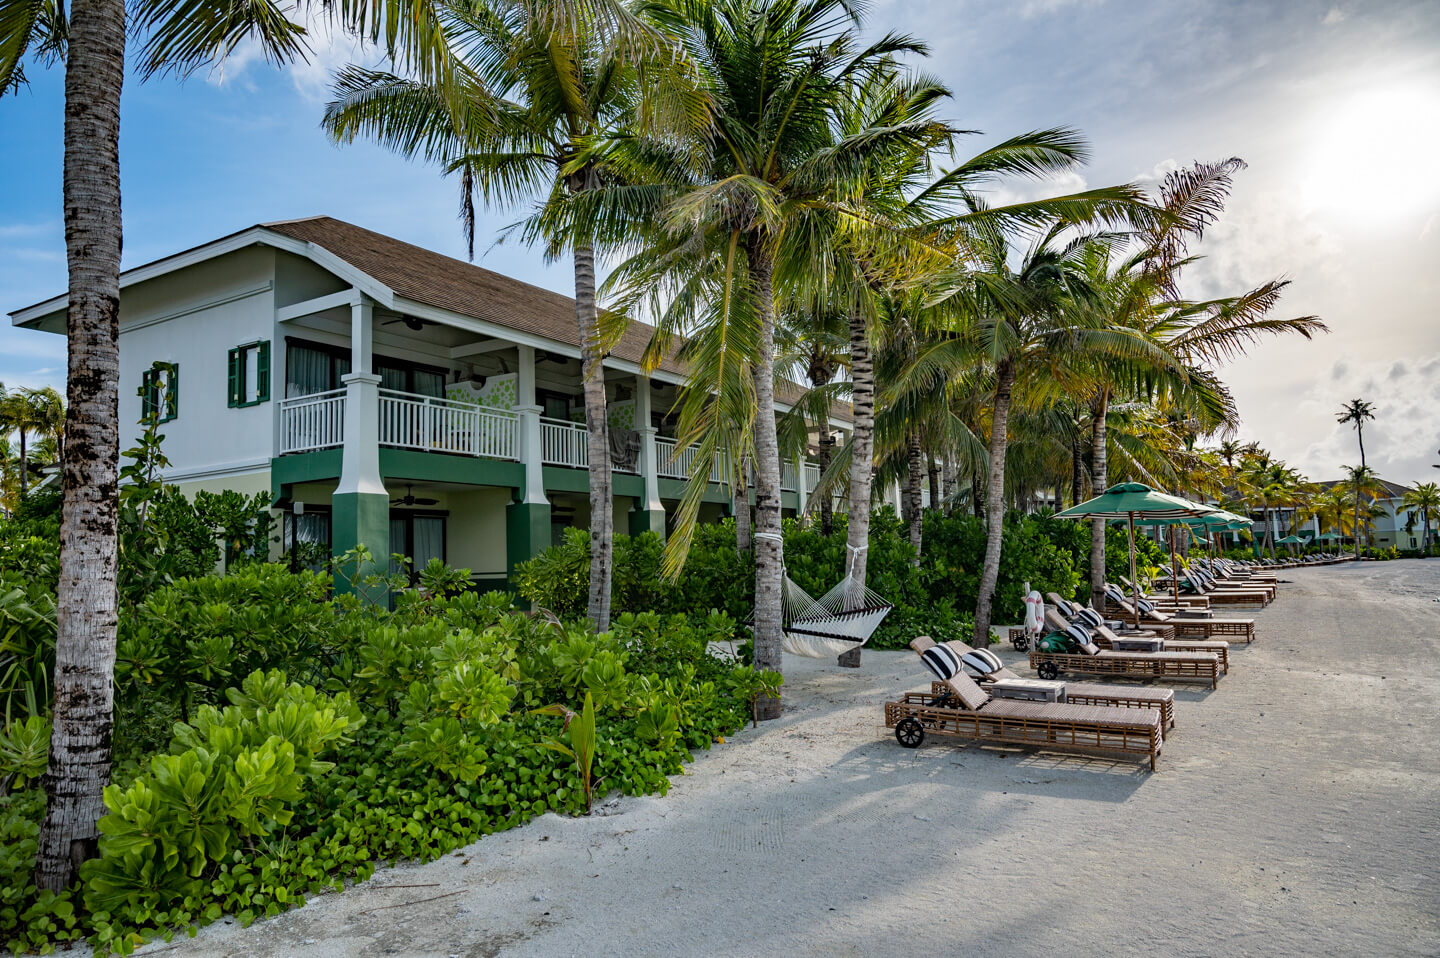 house at the beach with sun beds and many palm trees in The Maldives, SAii Lagoon